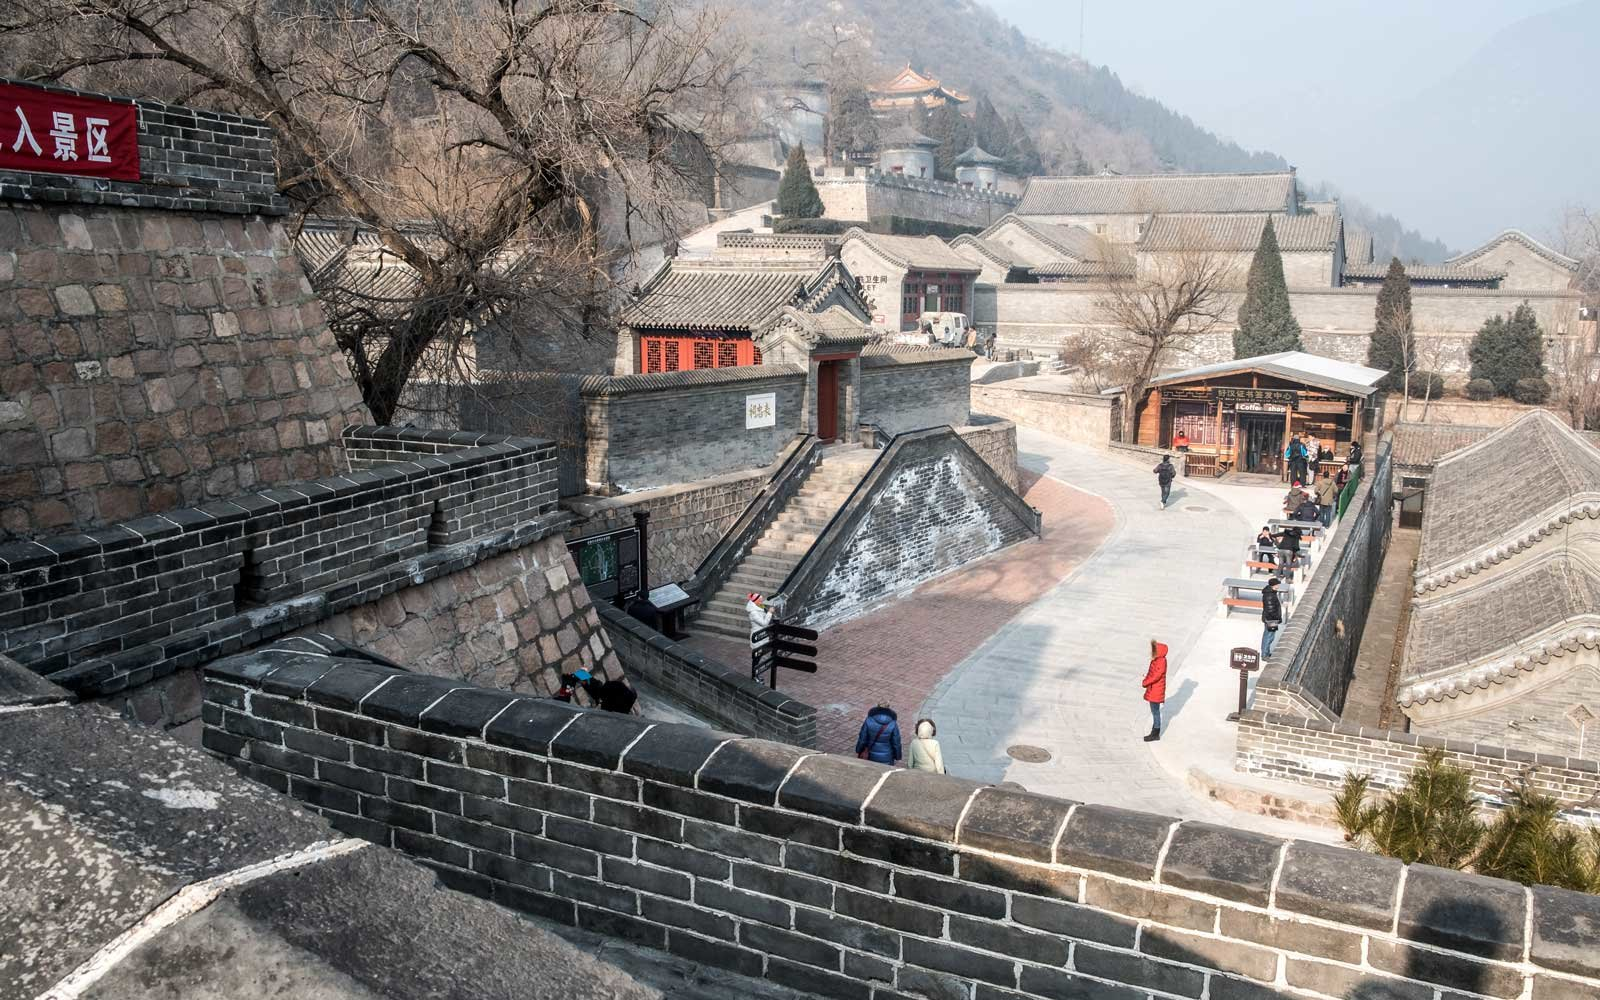 Old Chinese village in the mountain range, Great Wall of China, Beijing, China